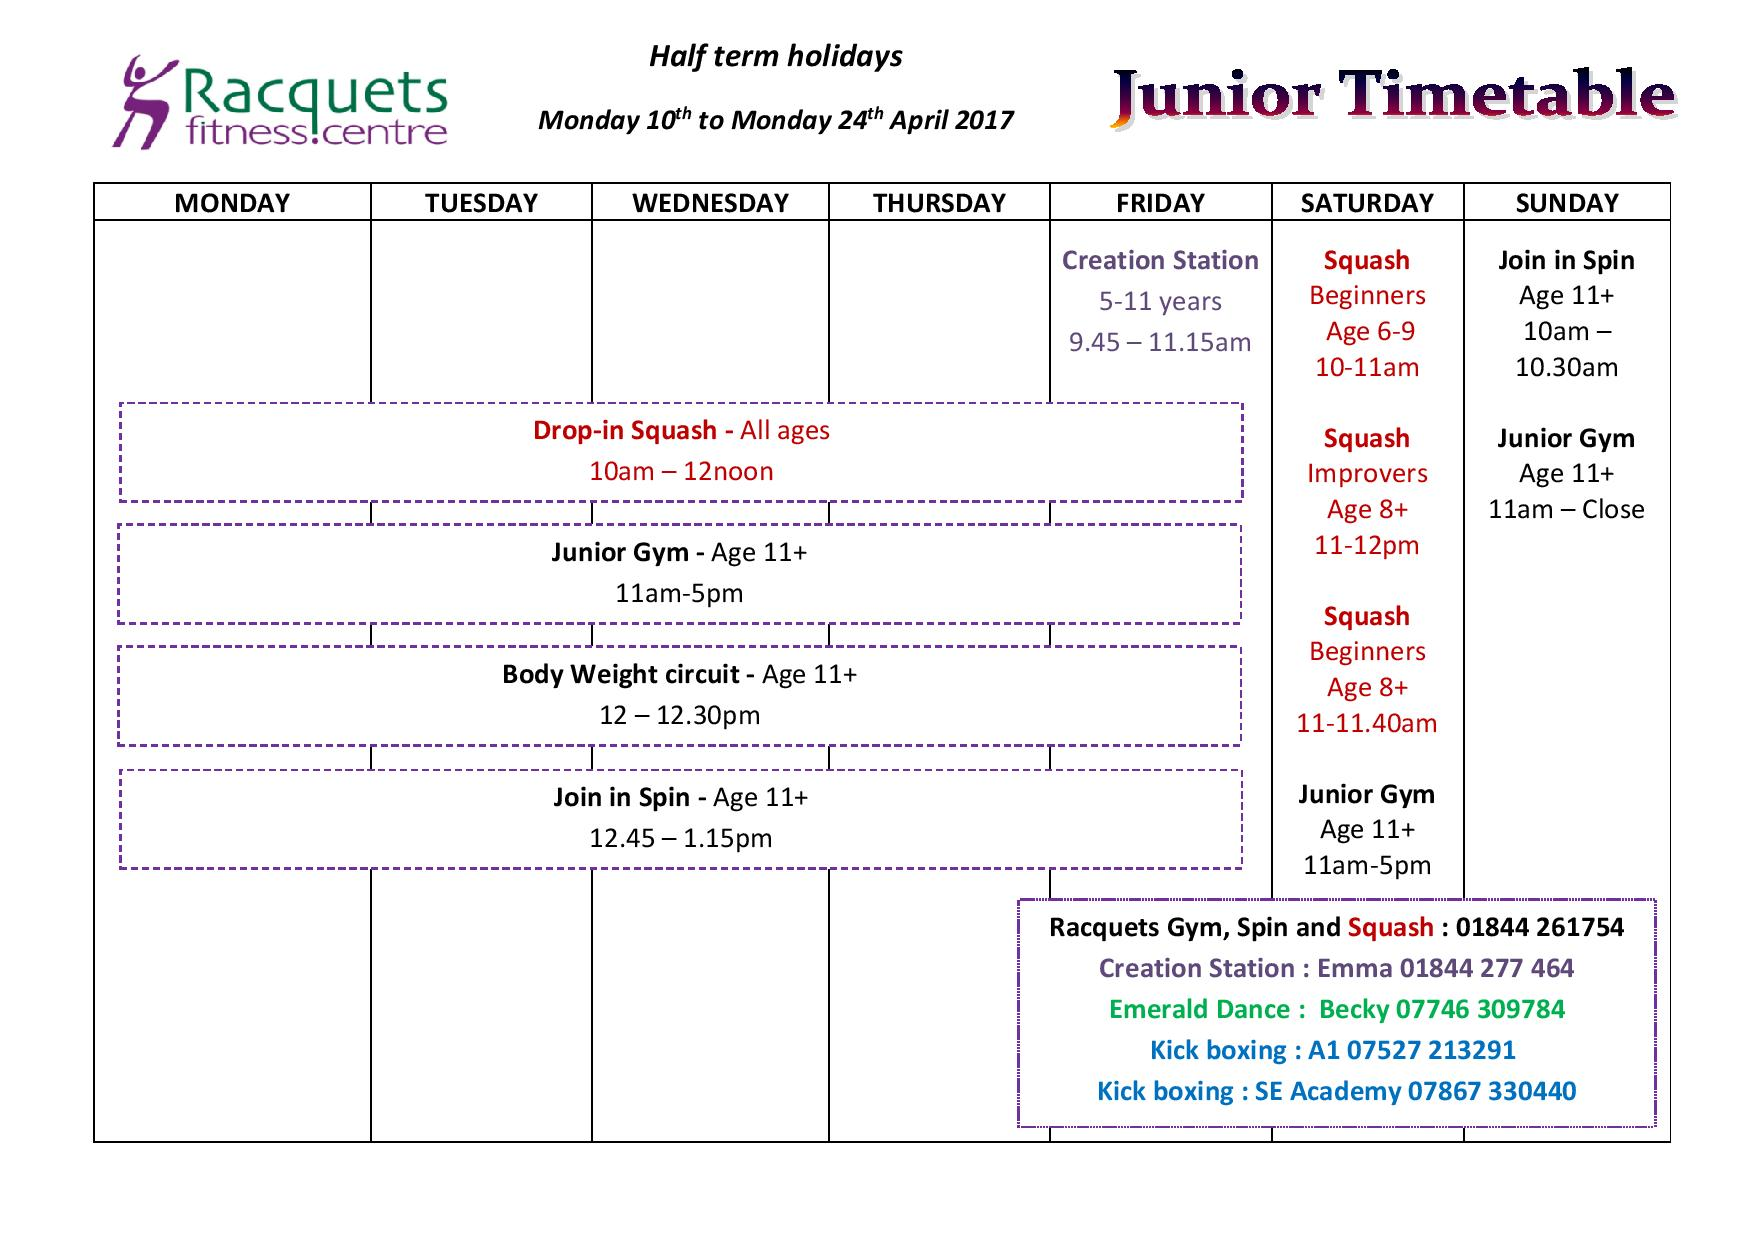 Junior Timetable - holiday